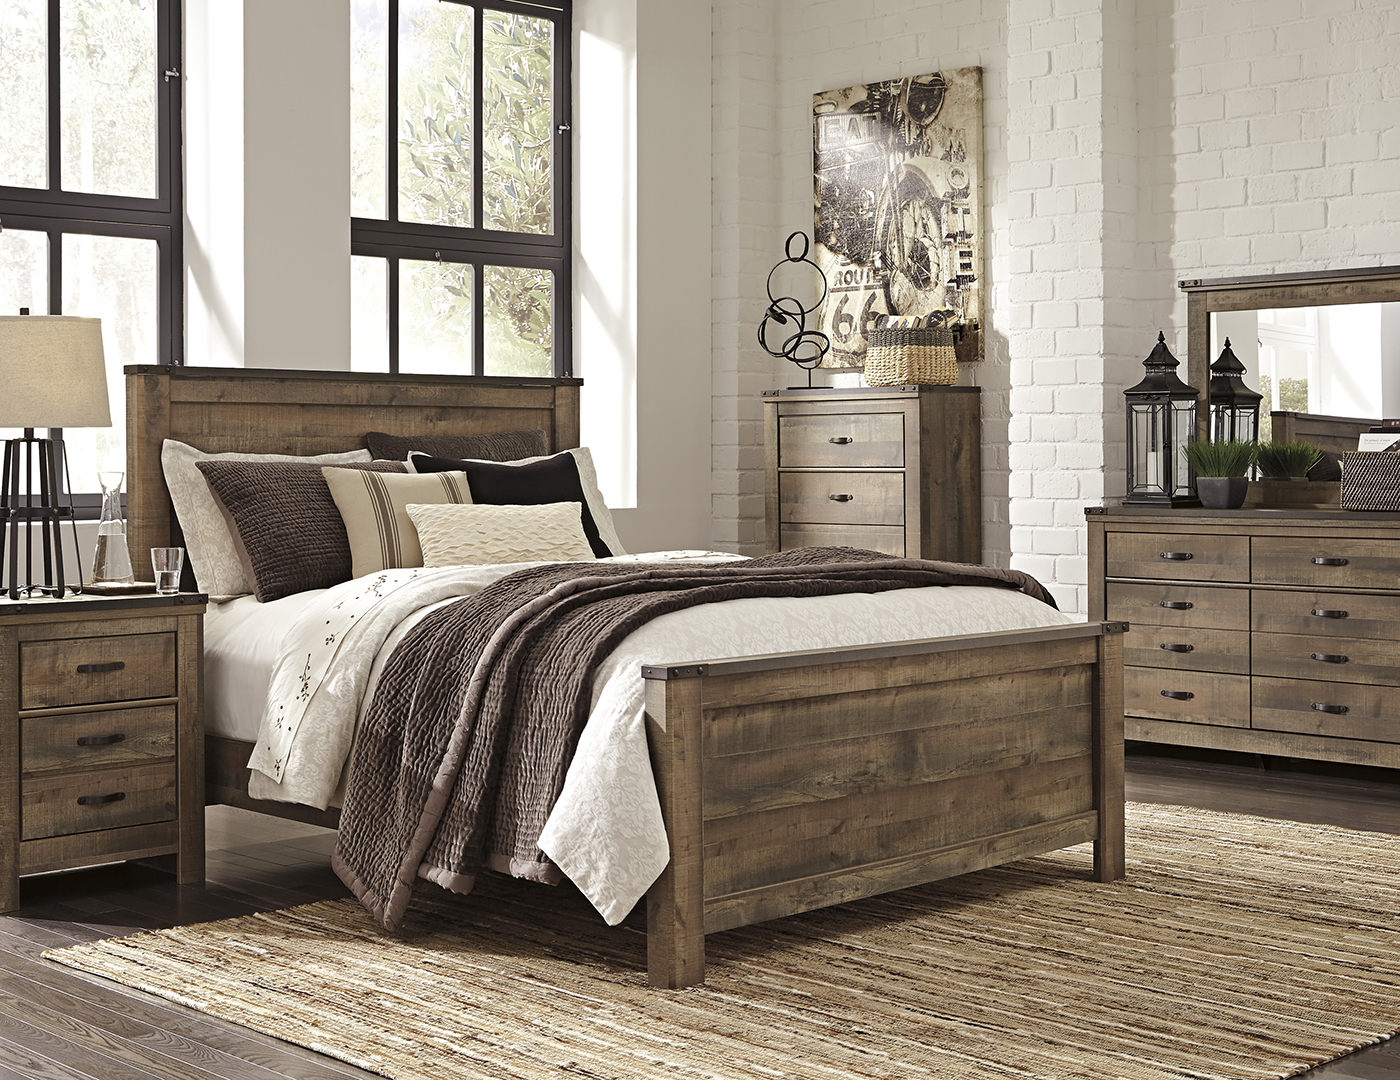 Trinell 5-pc. Queen Bedroom Set